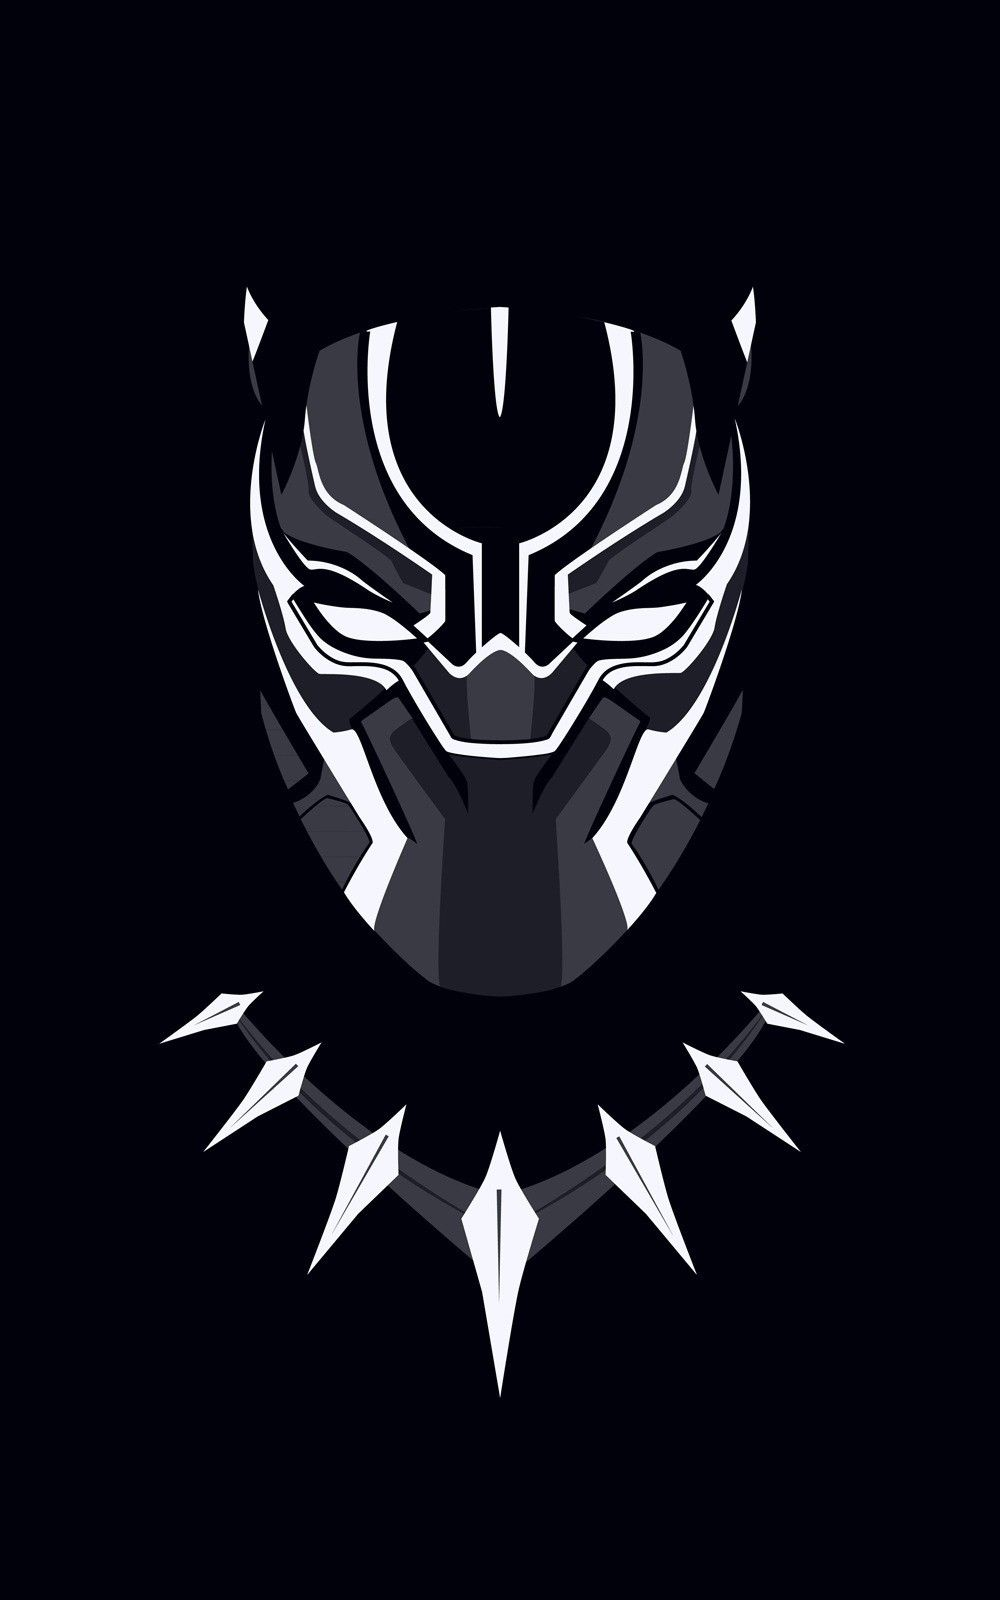 Pin By Abdul Kader On Sketches Black Panther Marvel